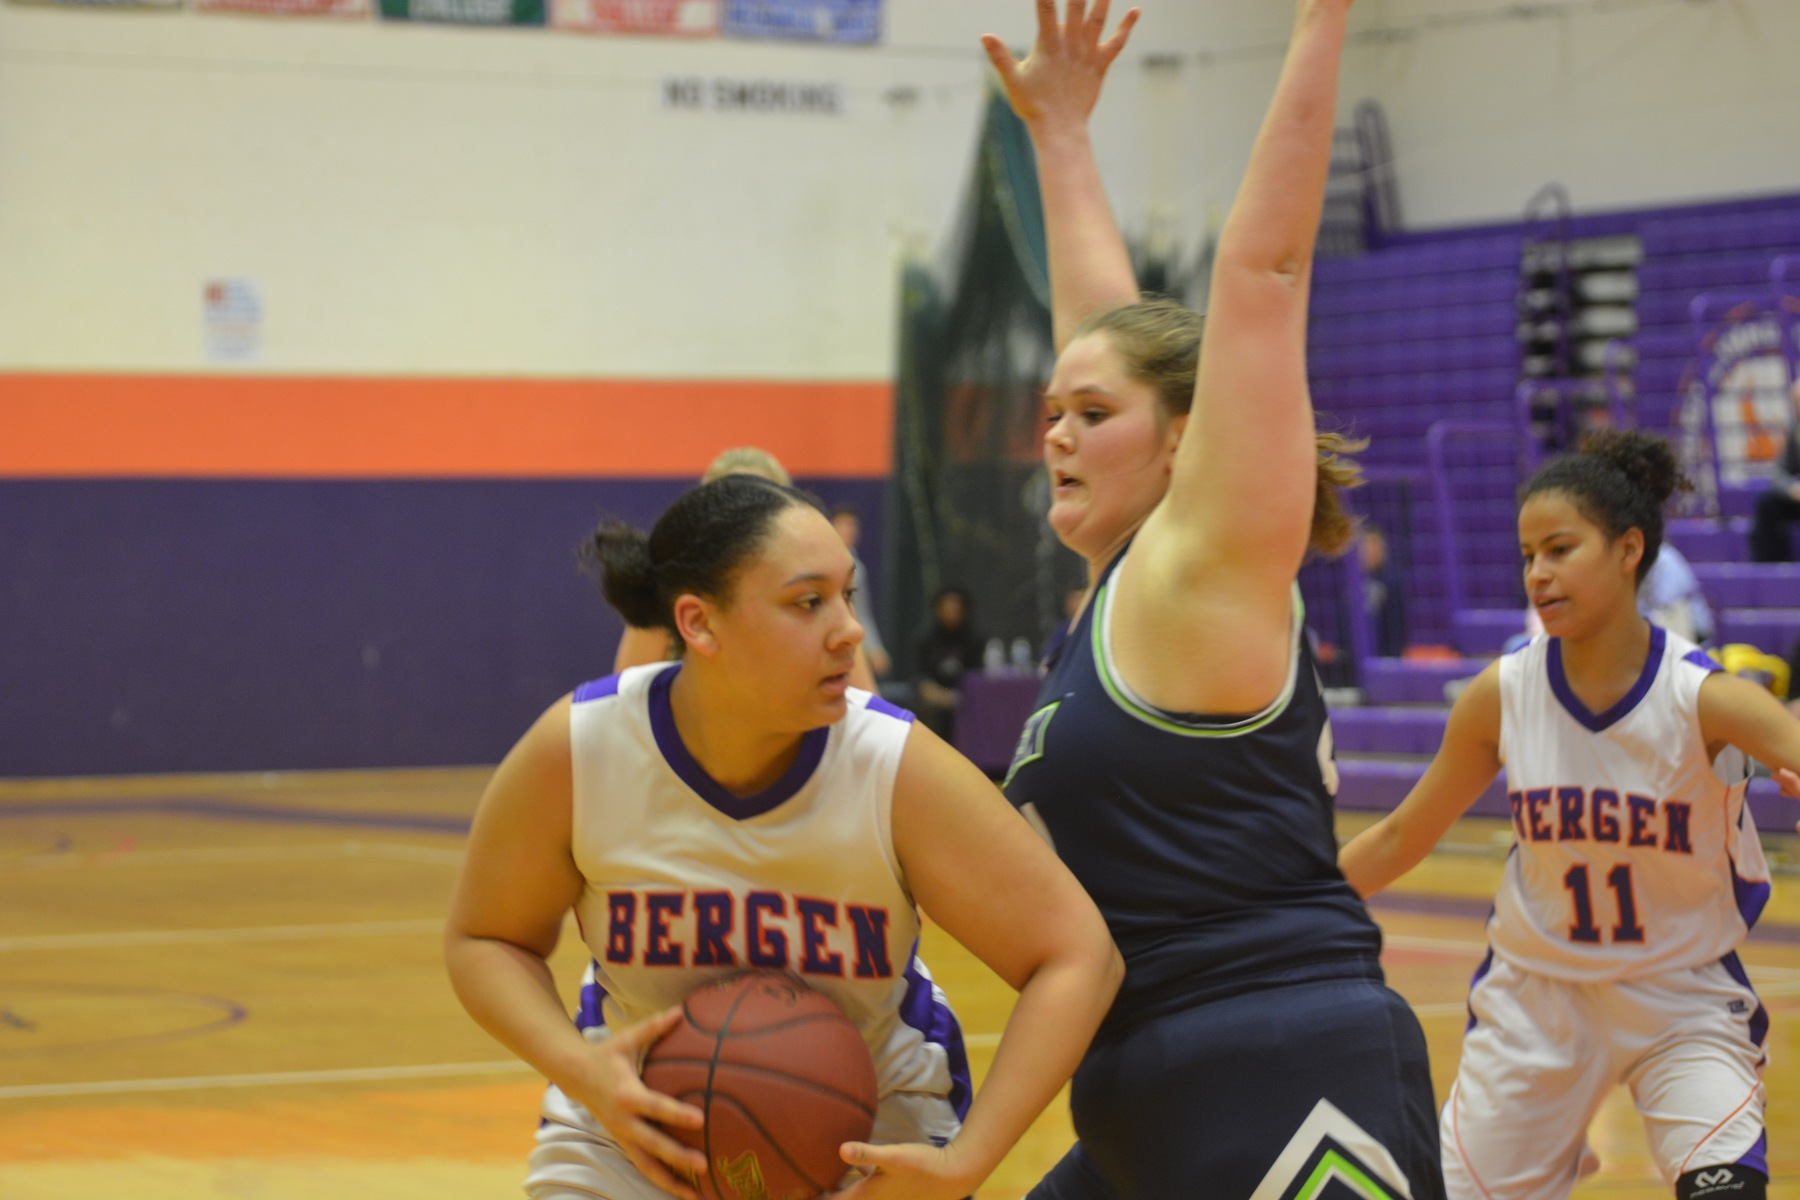 Bergen Eliminated by Sussex in Wild Overtime Playoff Game